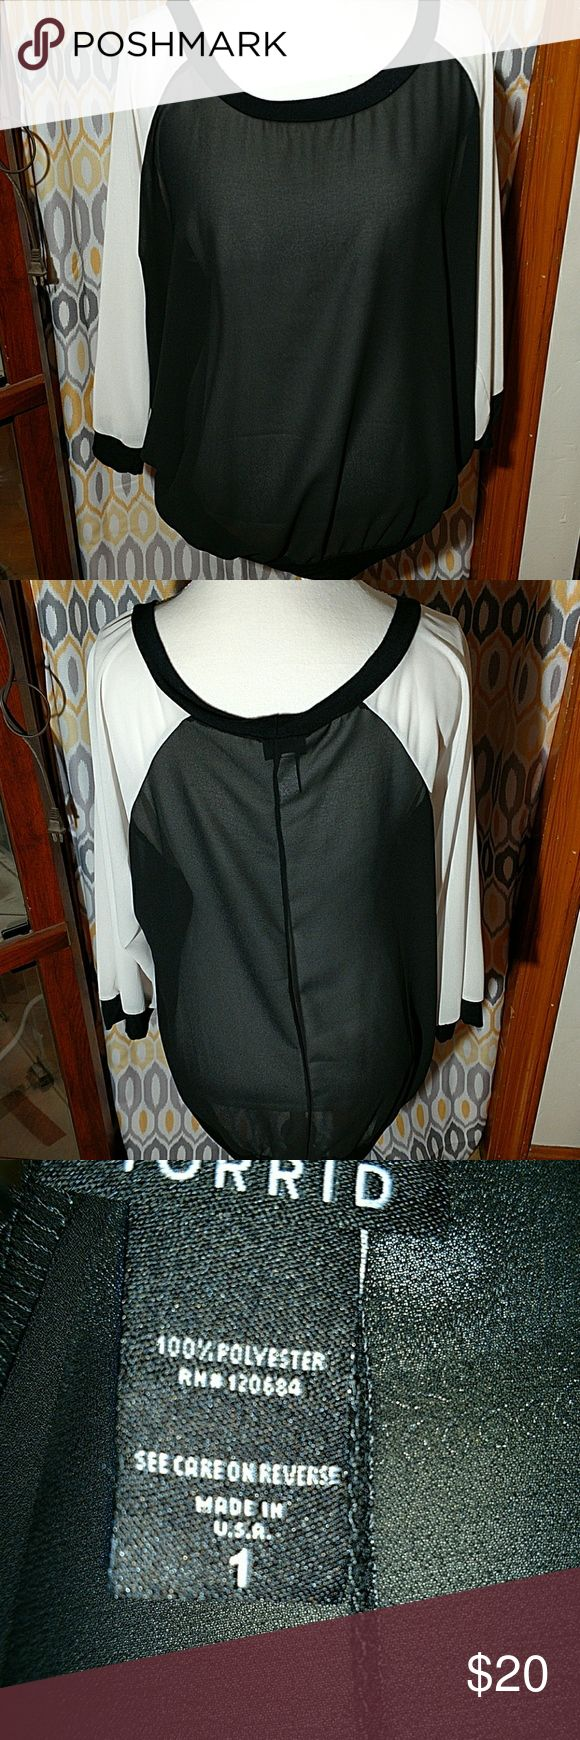 Shear top Cher black and white banded waist top Torrid Tops Blouses